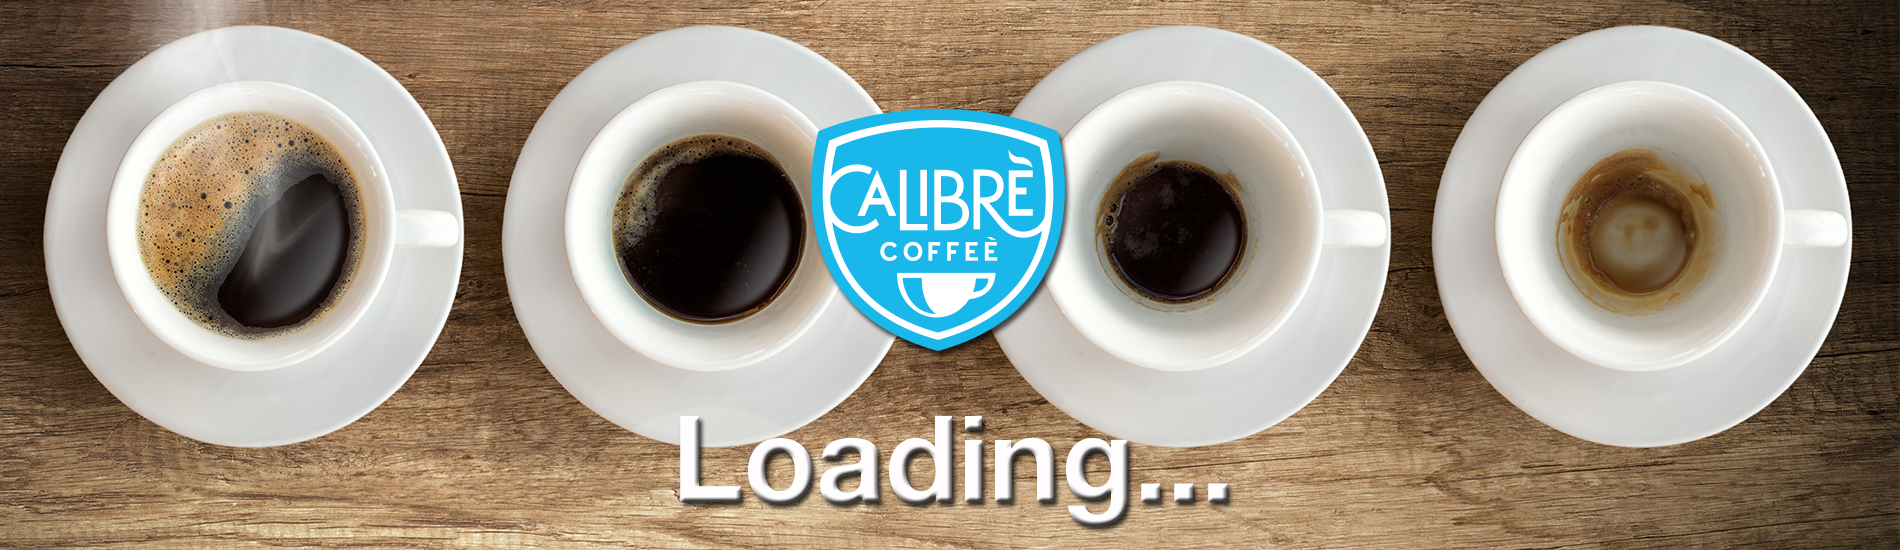 Calibre-coffee-loading3